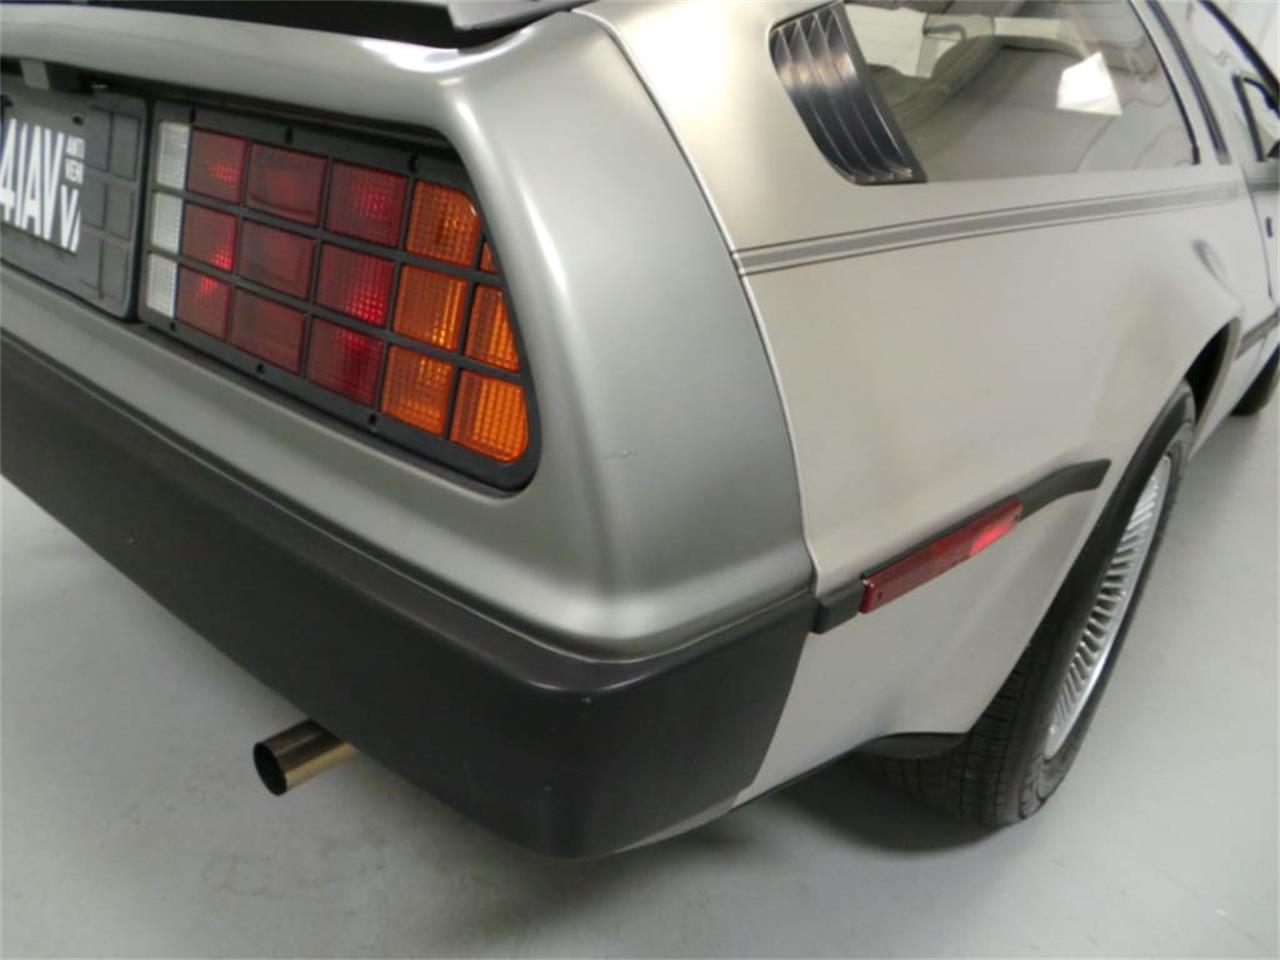 Large Picture of '81 DeLorean DMC-12 located in Christiansburg Virginia - $42,000.00 - JLCI